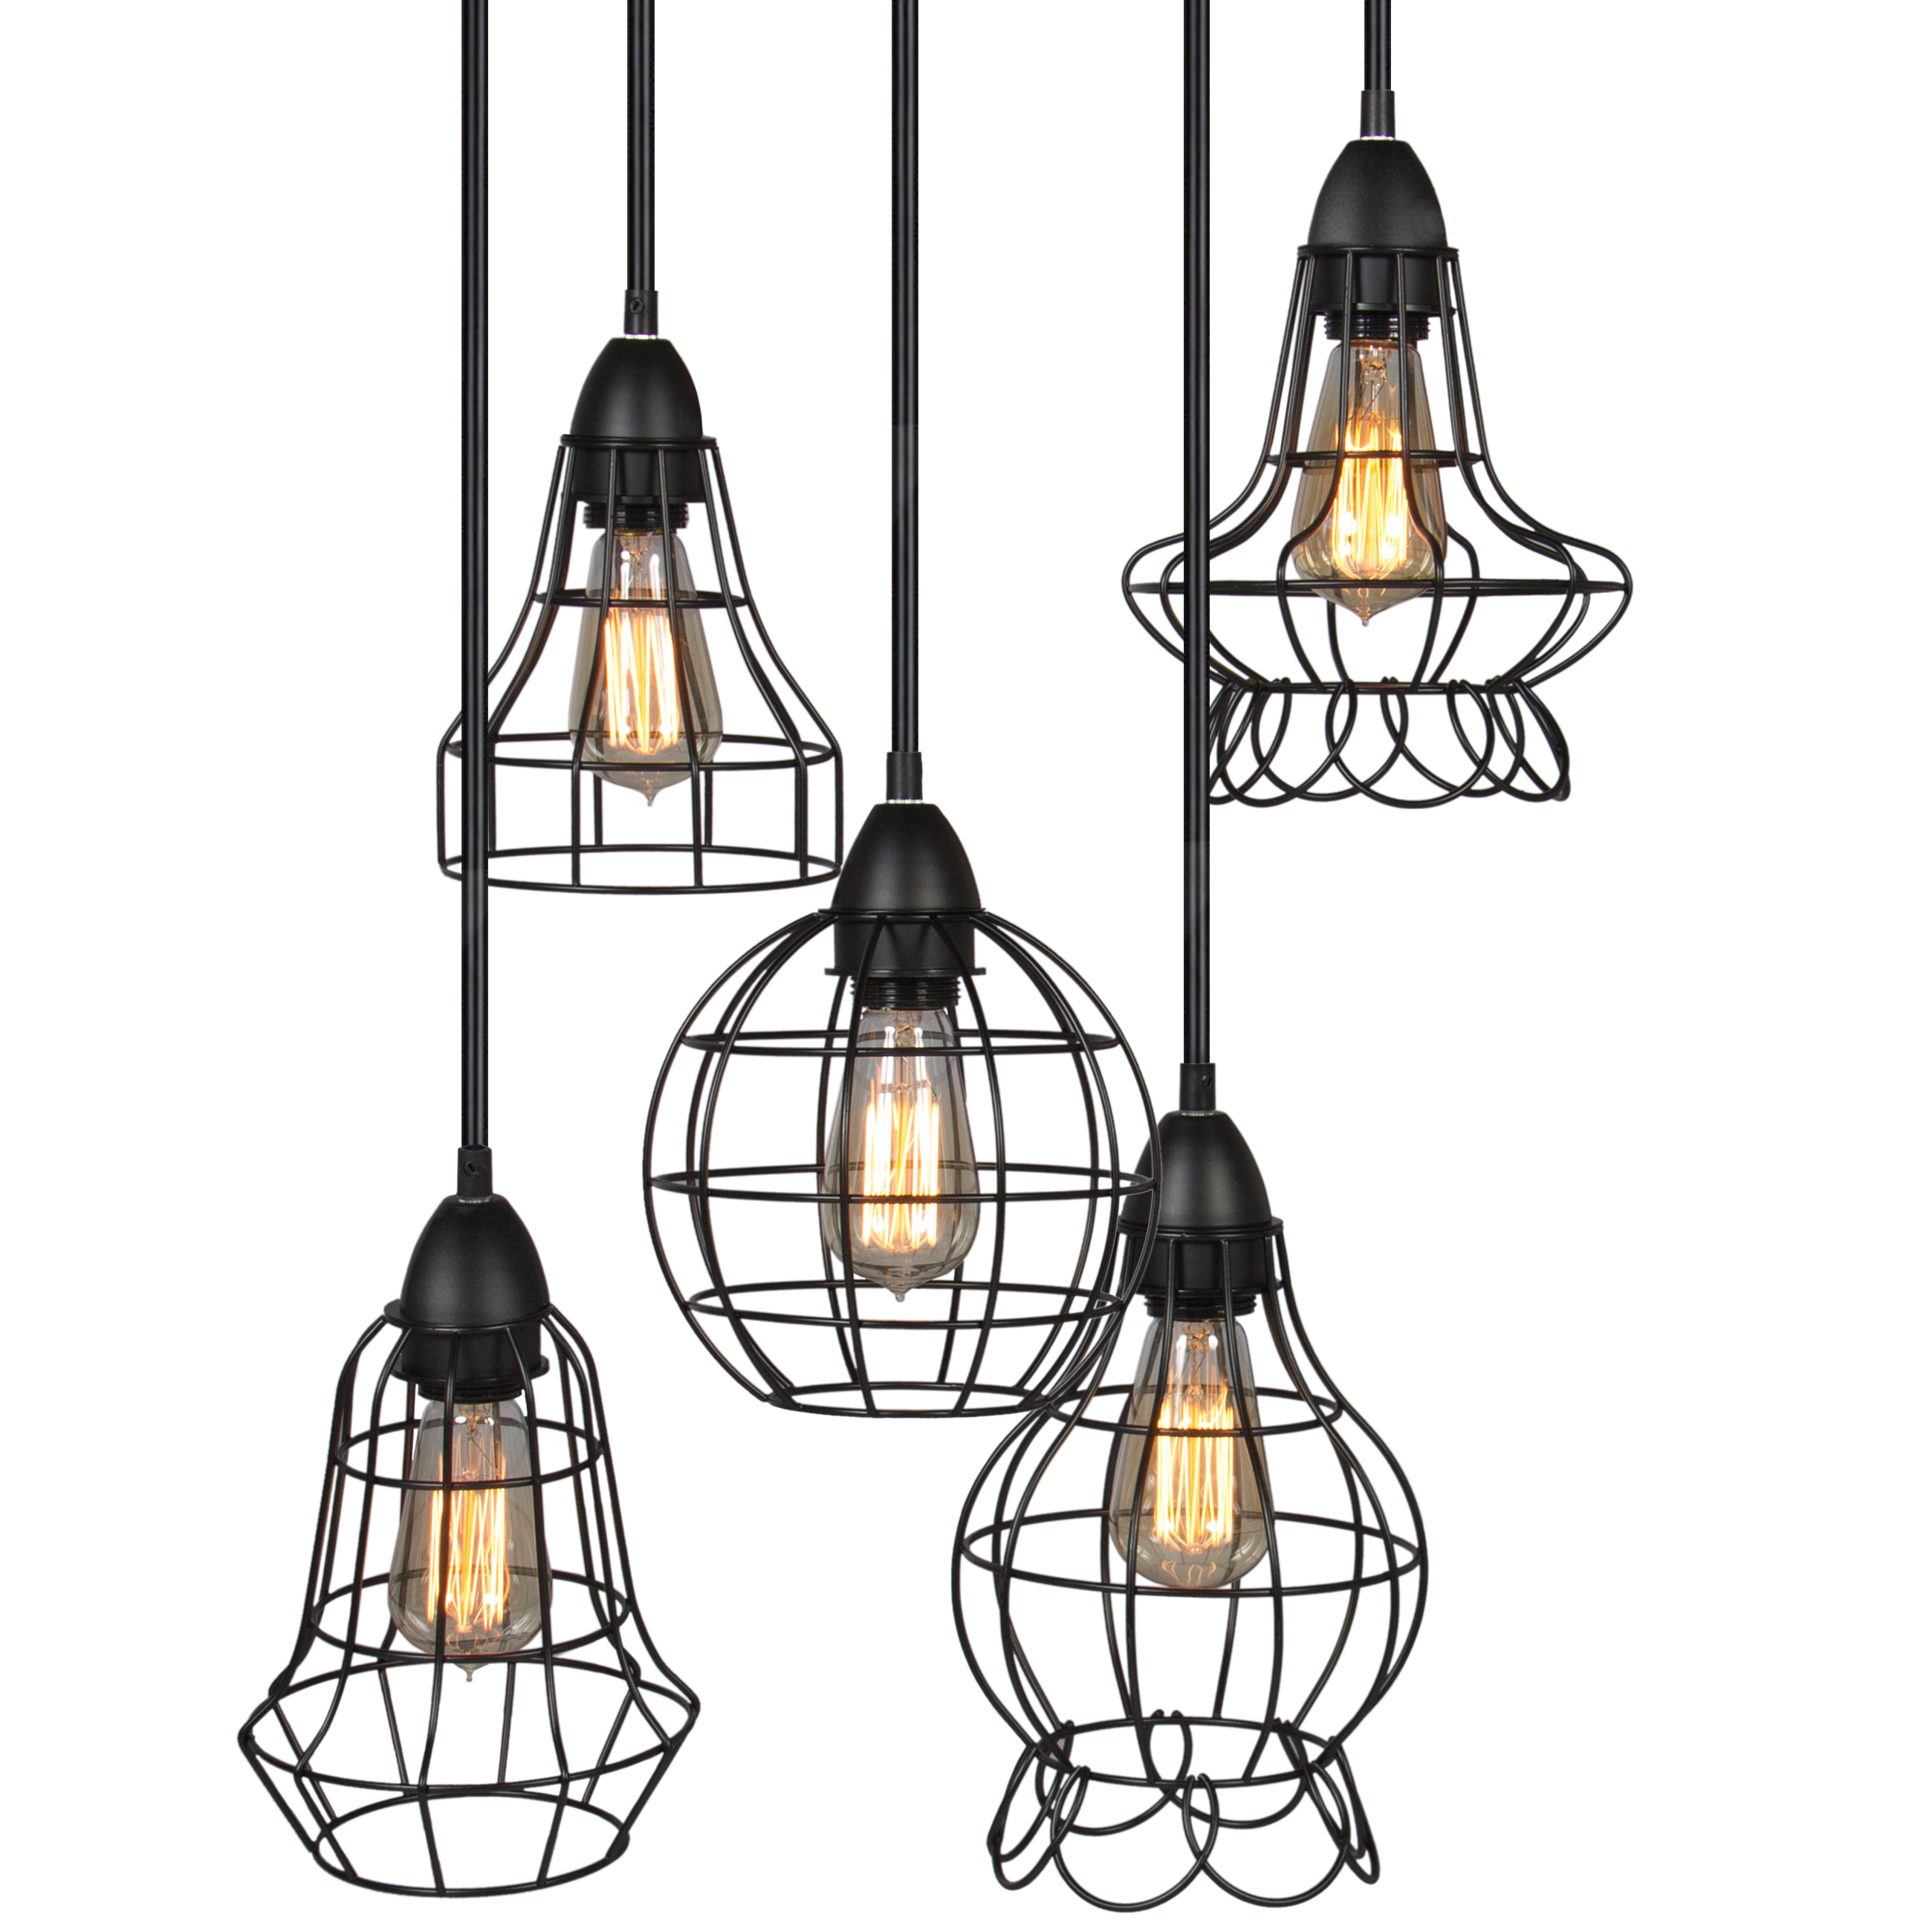 Best Choice Products Industrial Vintage Lighting Ceiling Chandelier 5 Lights Metal Hanging Fixture by